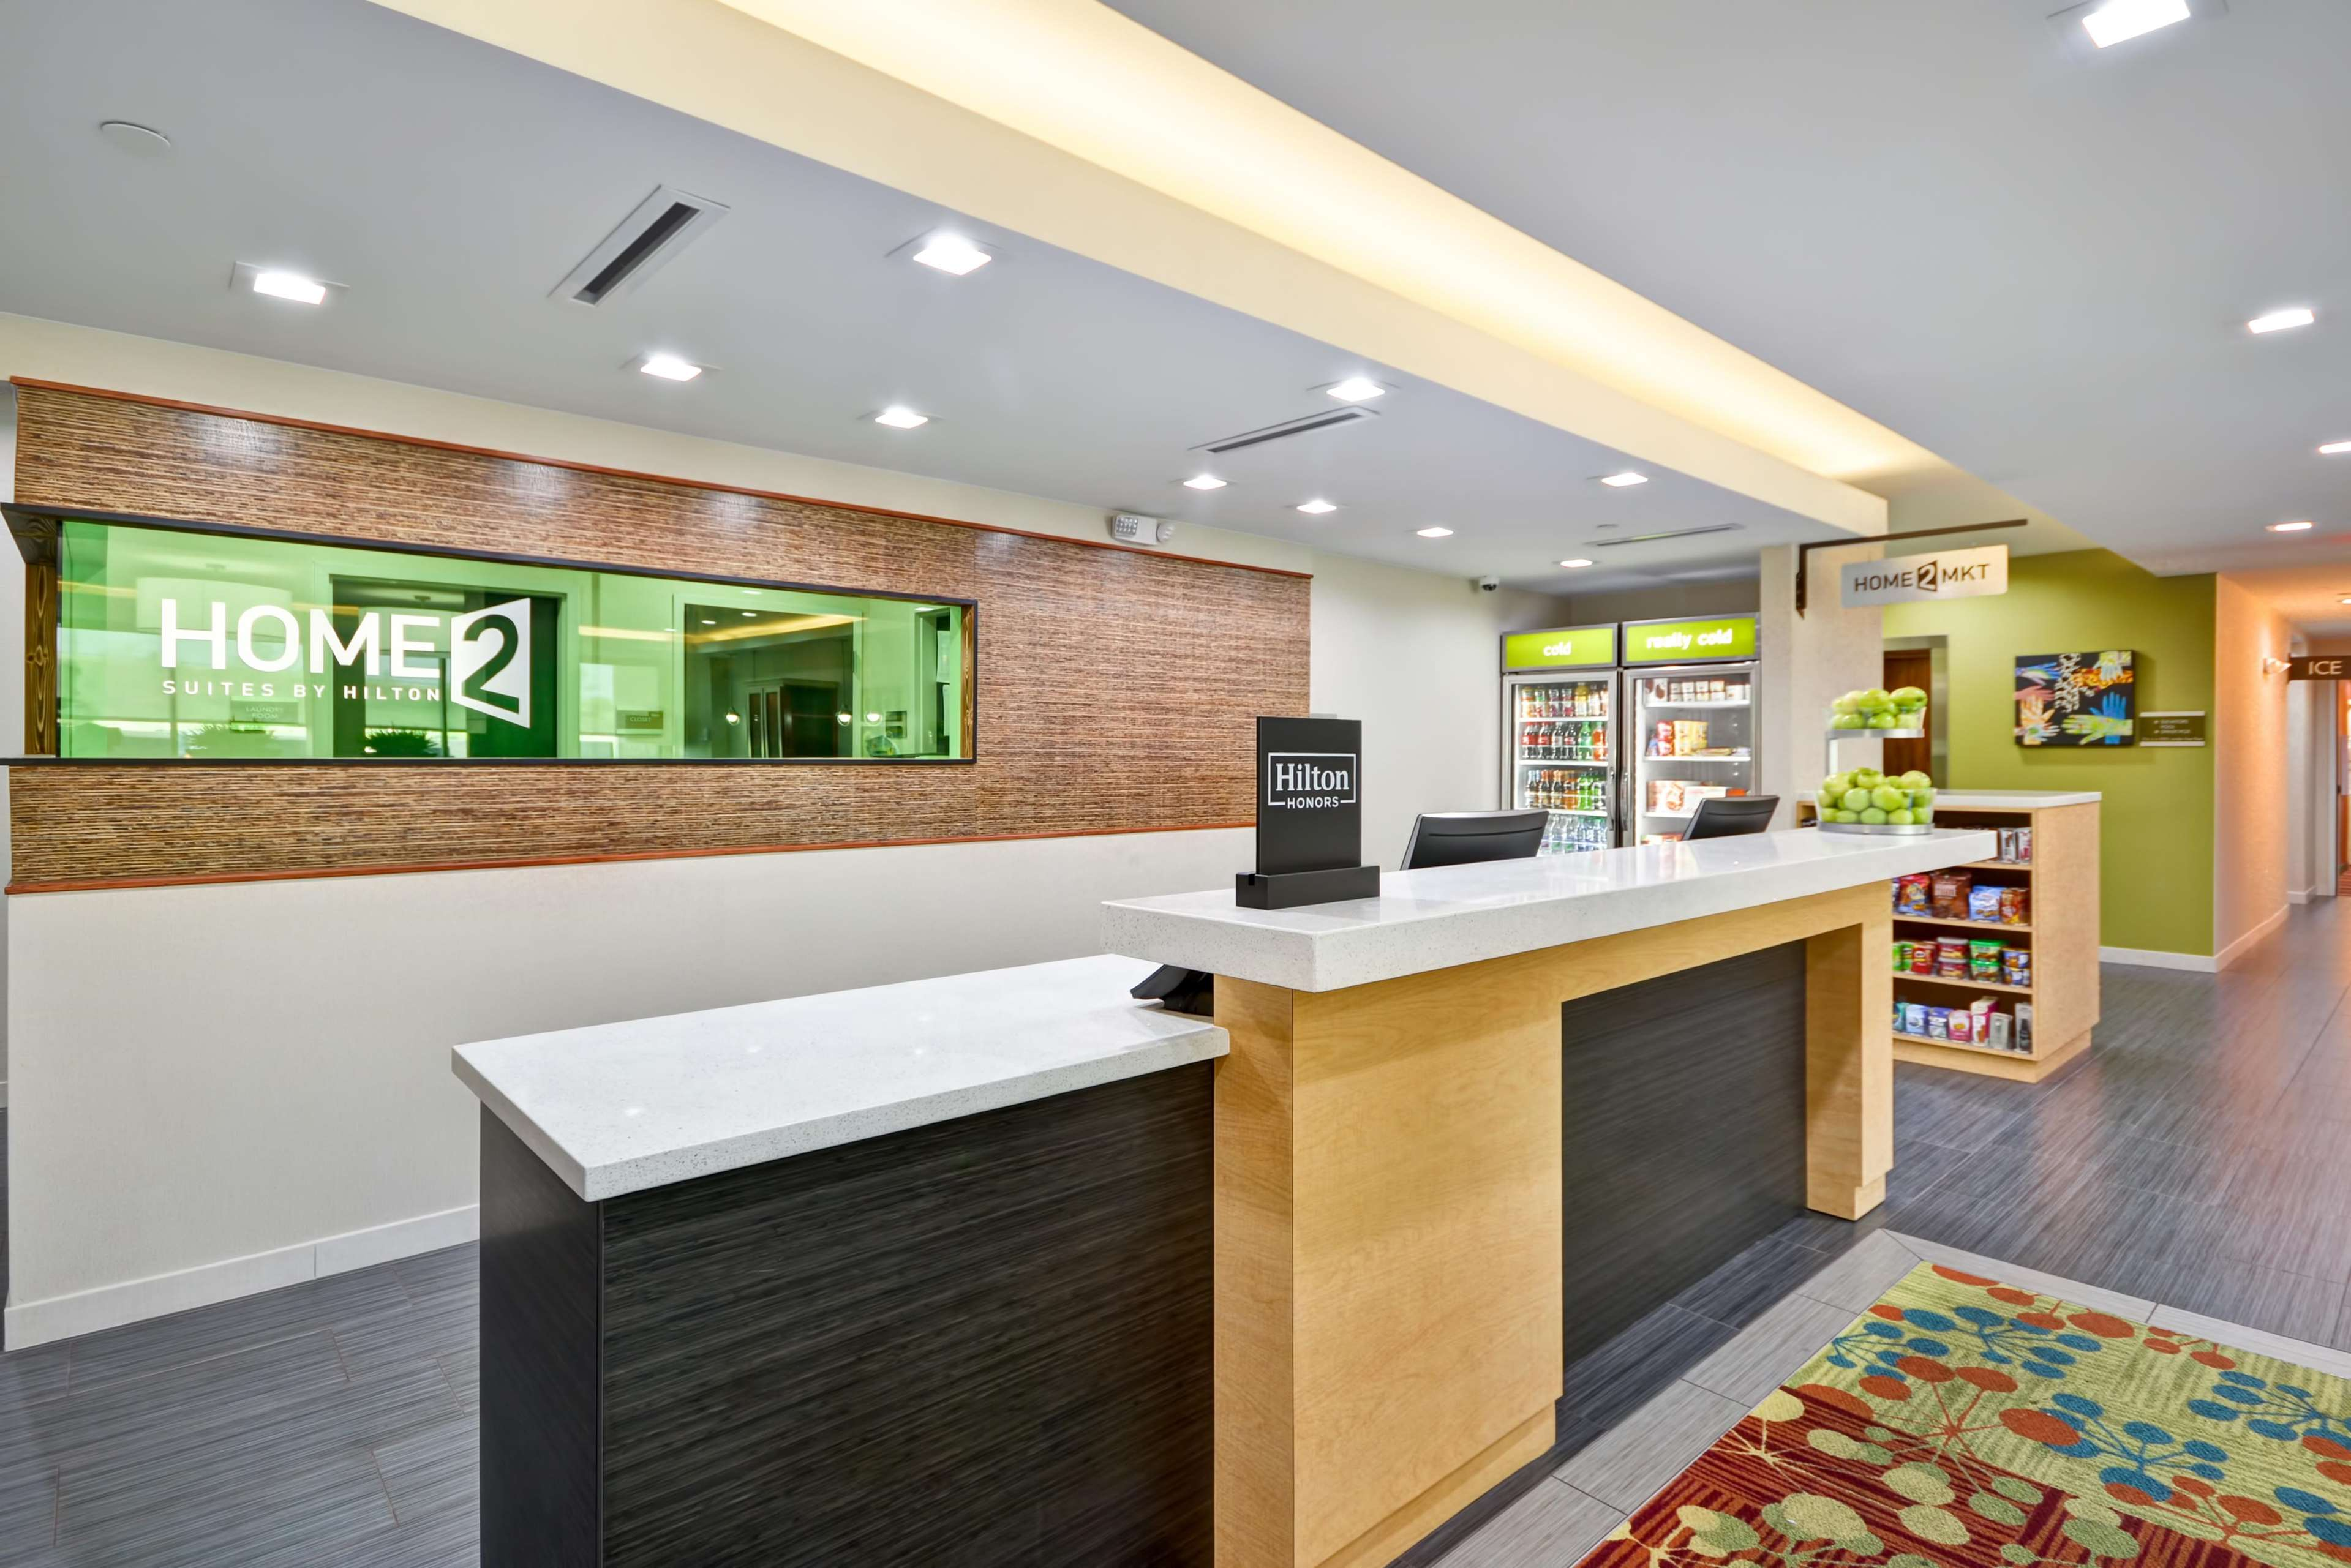 Home2 Suites by Hilton Fort Worth Southwest Cityview image 5